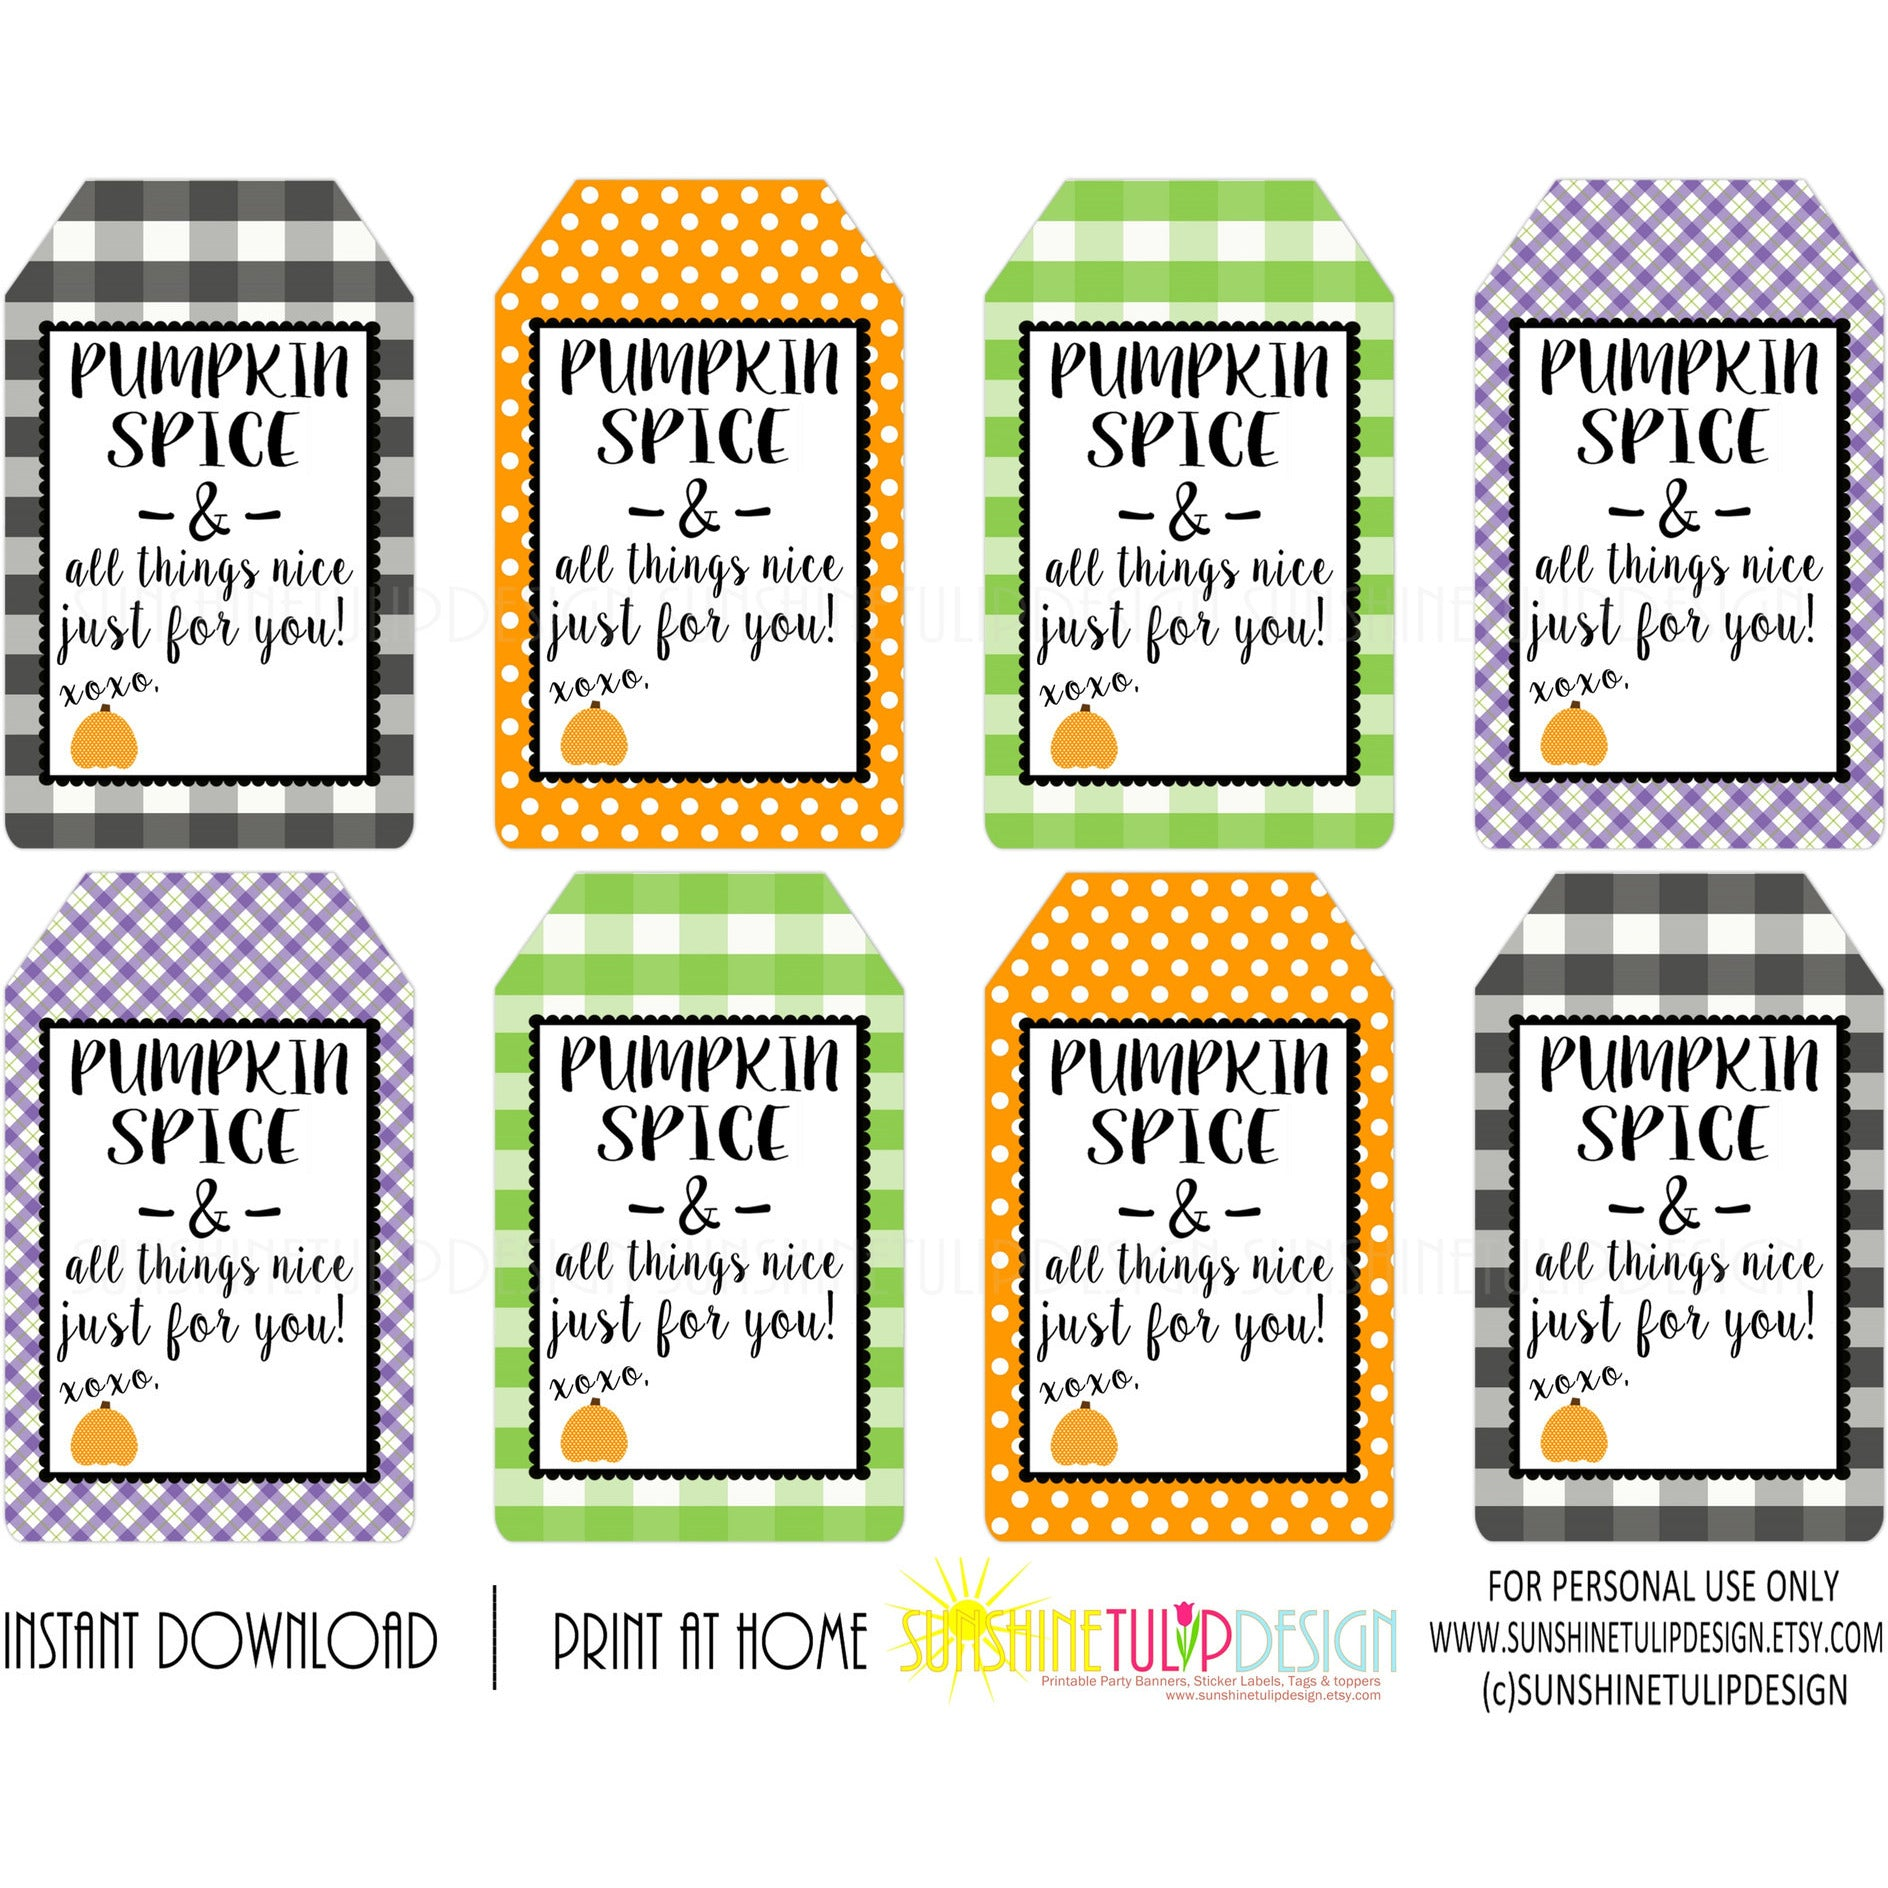 graphic relating to Printable Halloween Tags identify Pumpkin Spice Anything Good Tags, Printable Instructor Appreciation HALLOWEEN tags, Pumpkin Spice Reward Tags via SUNSHINETULIPDESIGN